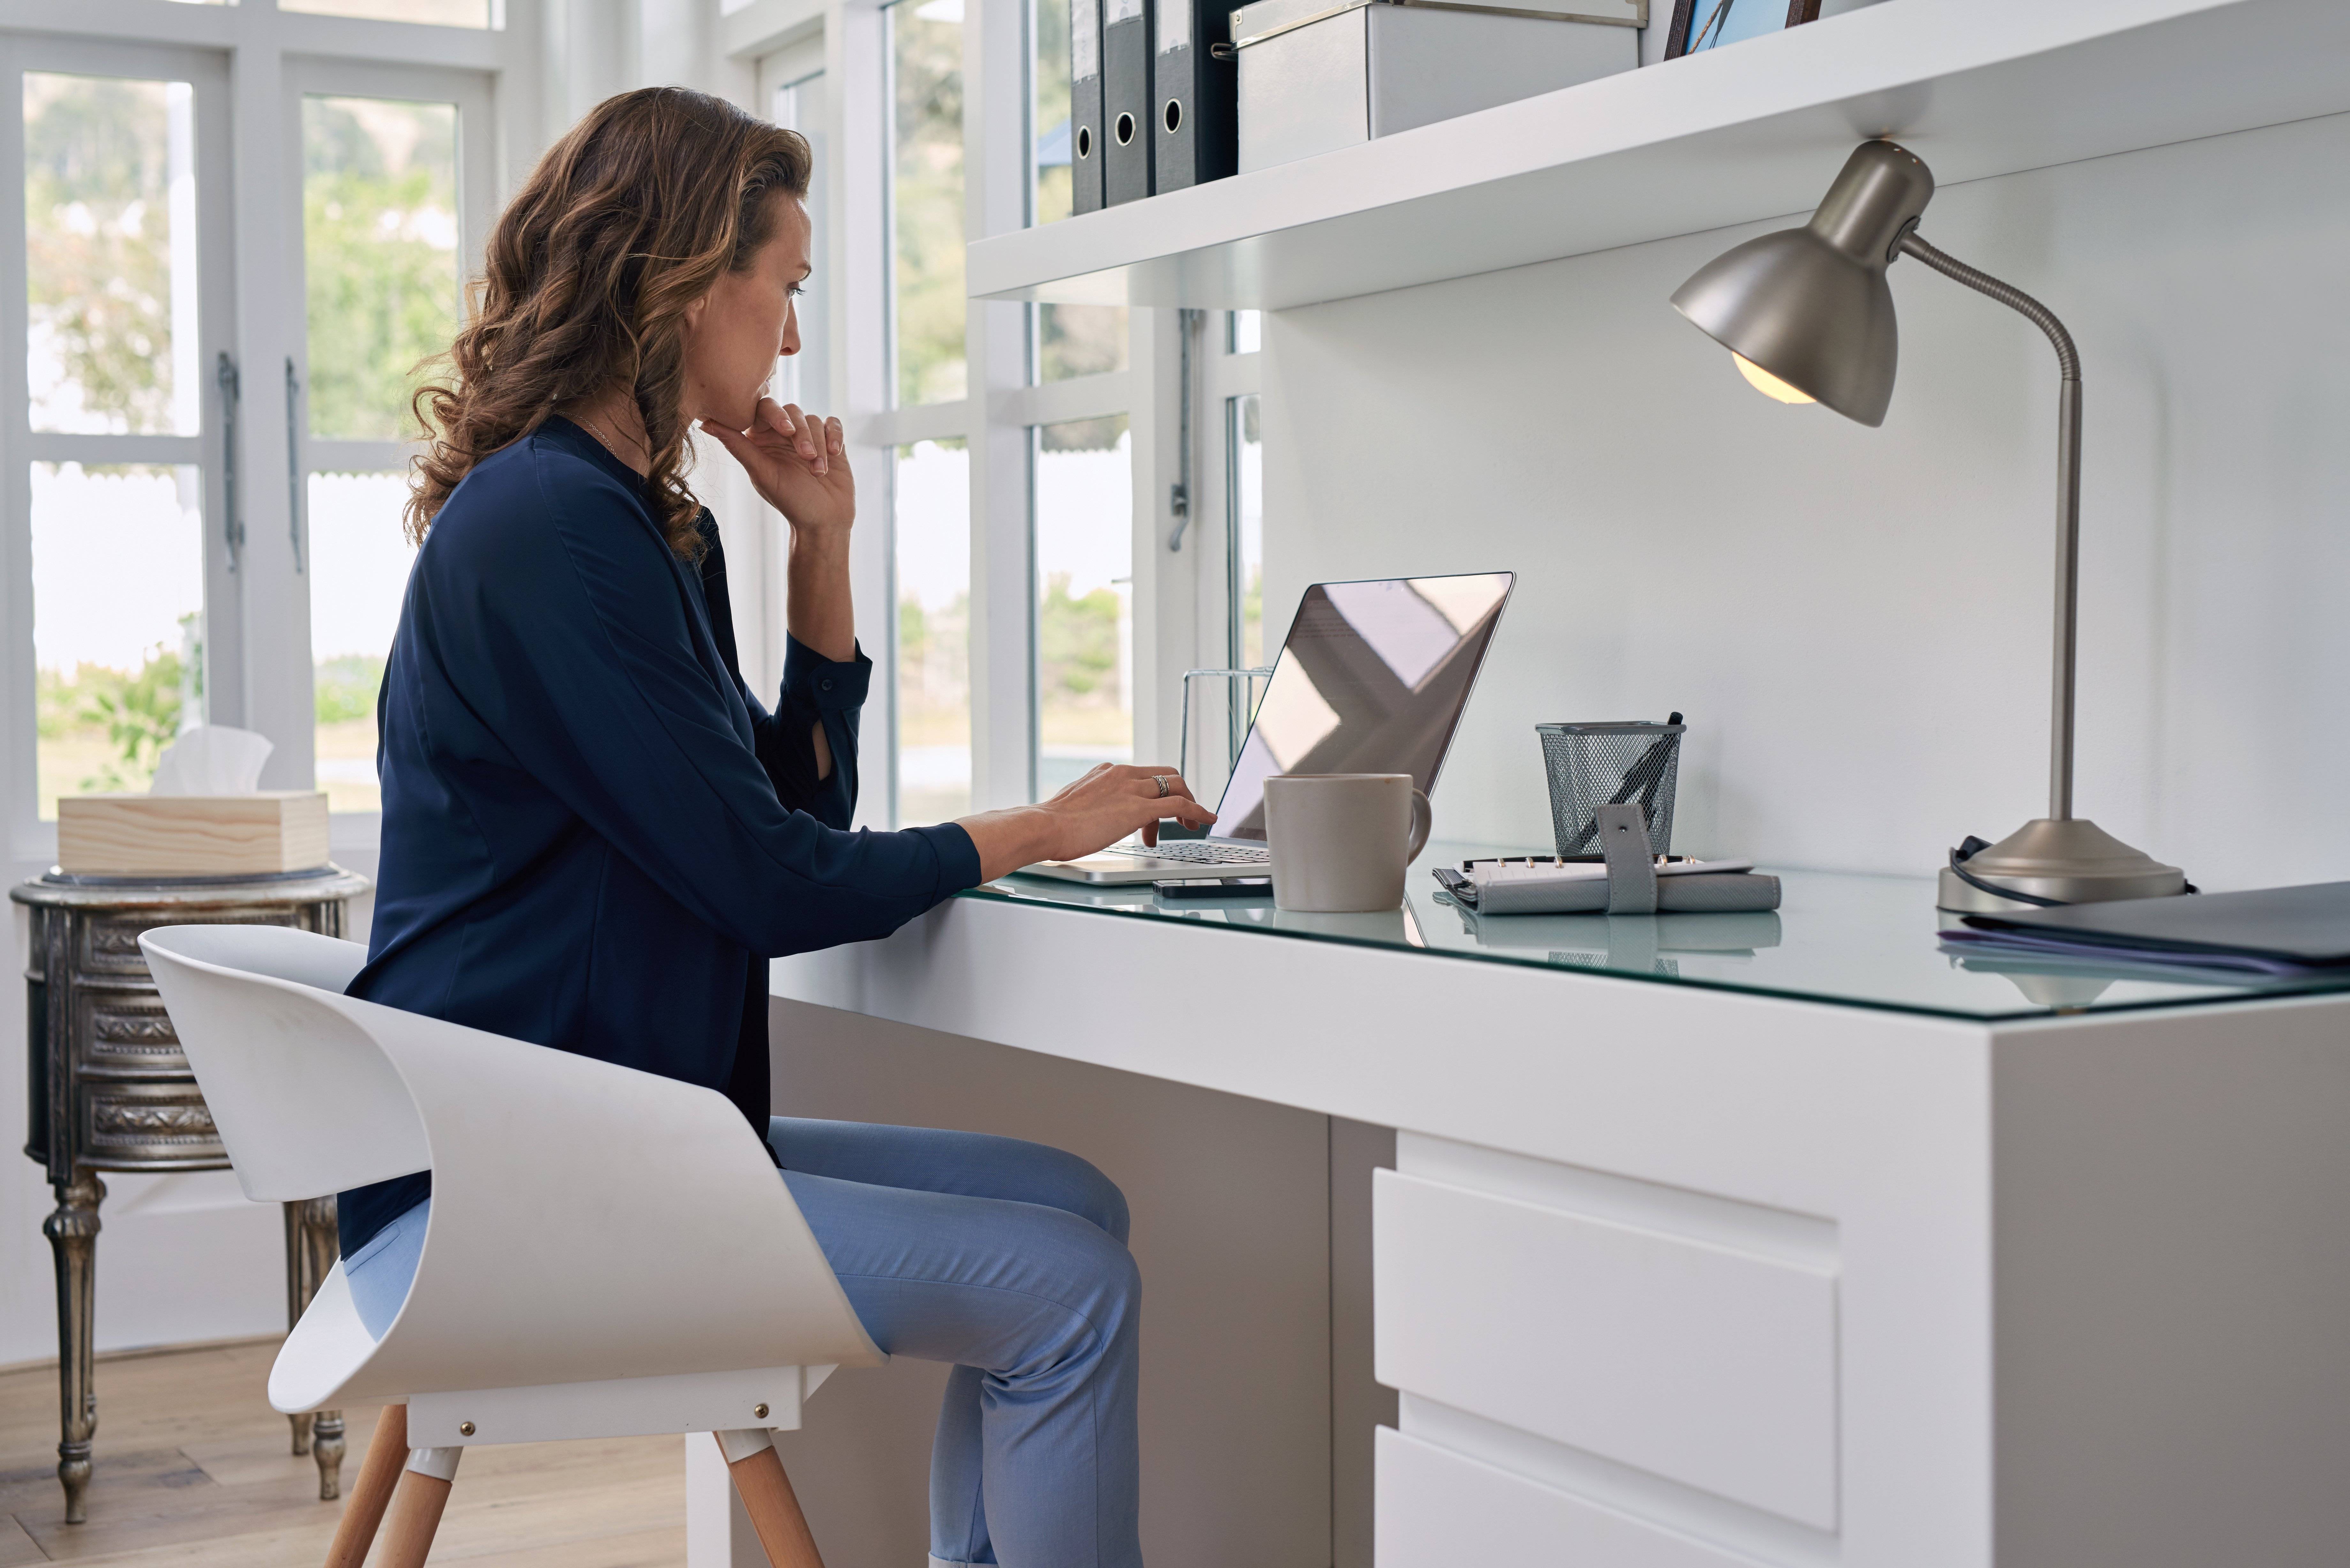 Allowing the Accounts Payable team to work from home delivers business benefits and efficiencies.